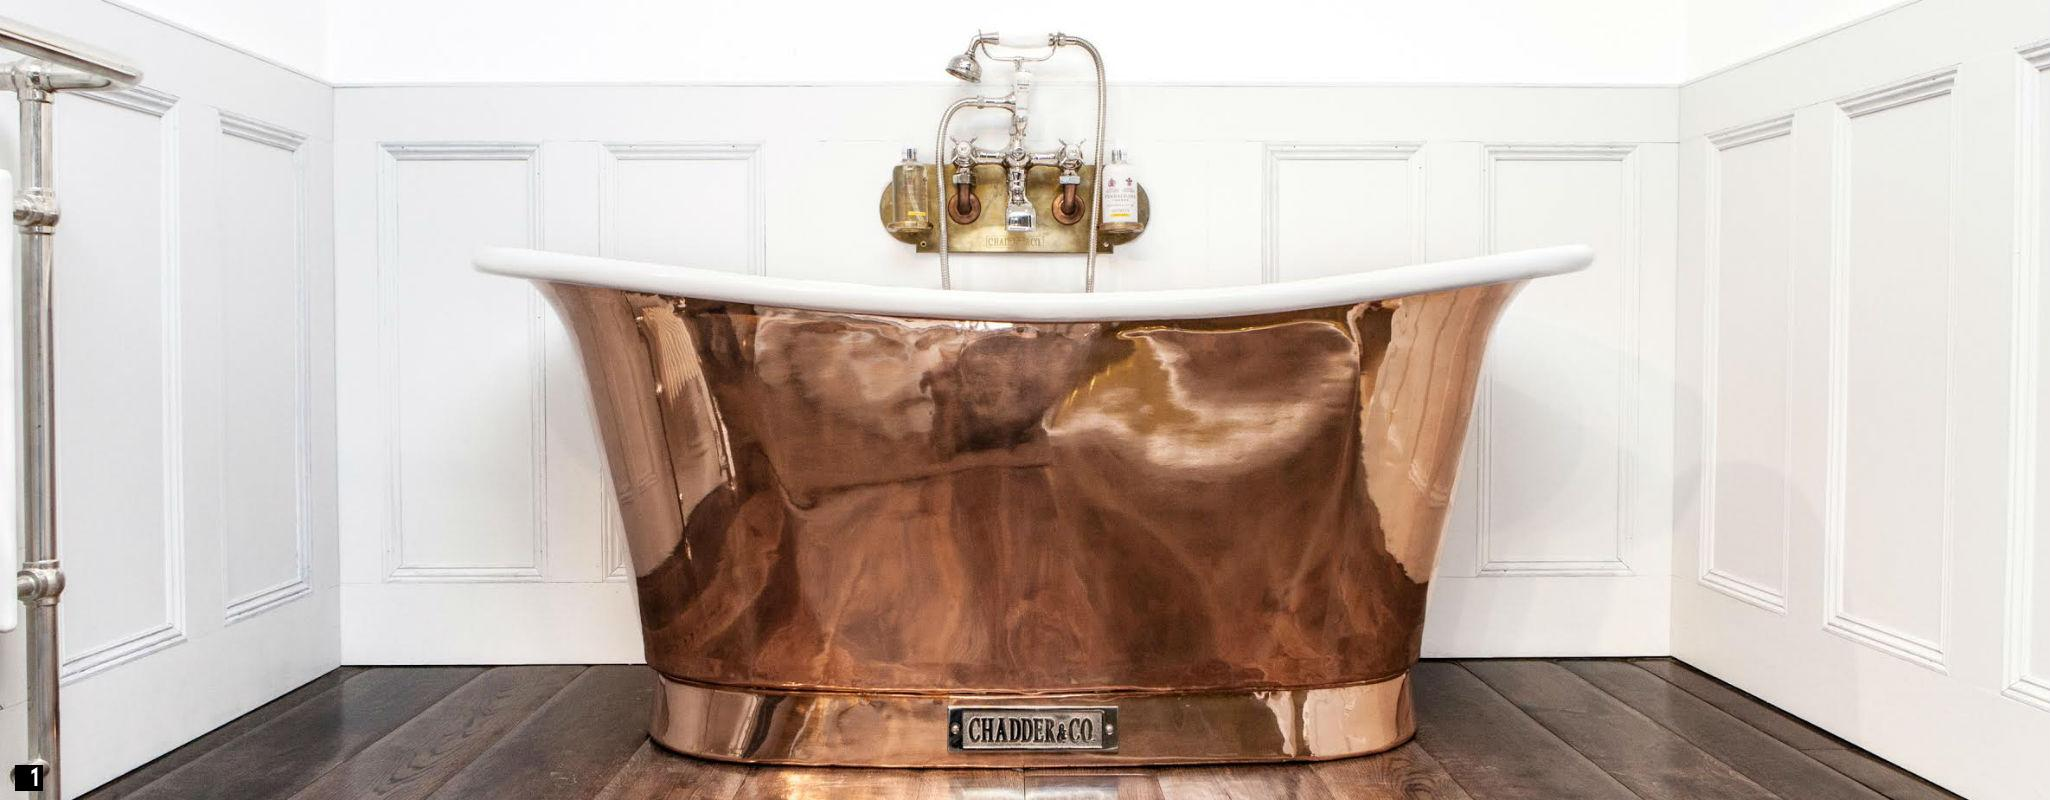 Vintage Copper Bath with Enamel Interior